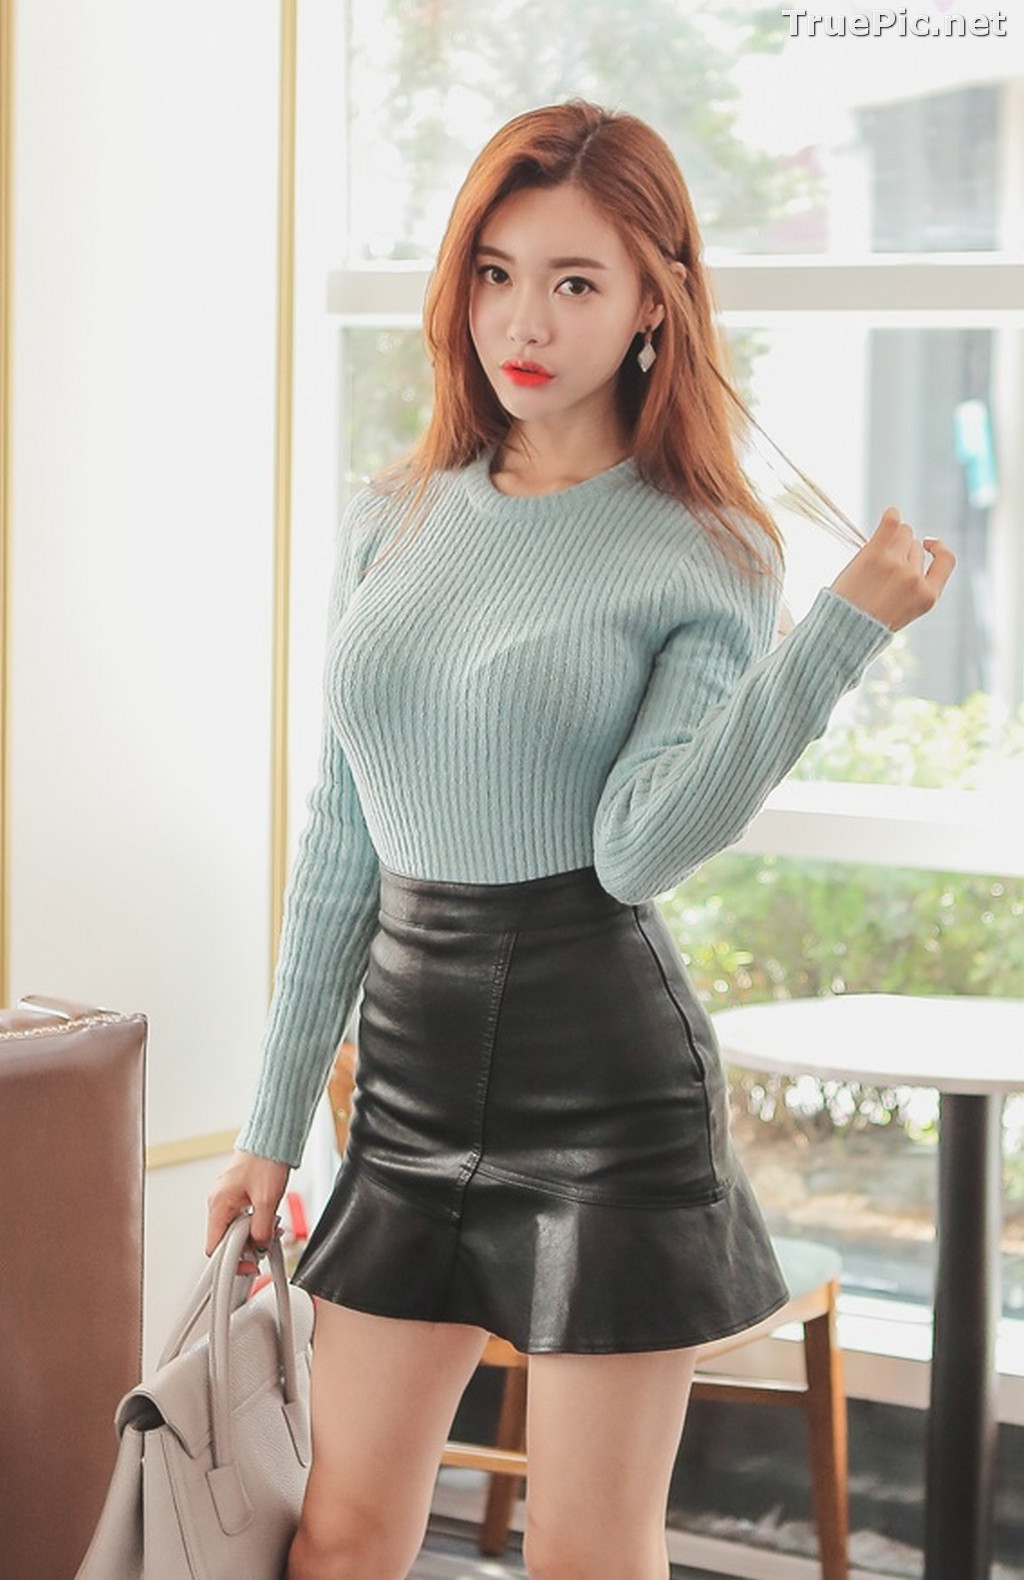 Image Korean Fashion Model – Hyemi – Office Dress Collection #3 - TruePic.net - Picture-1